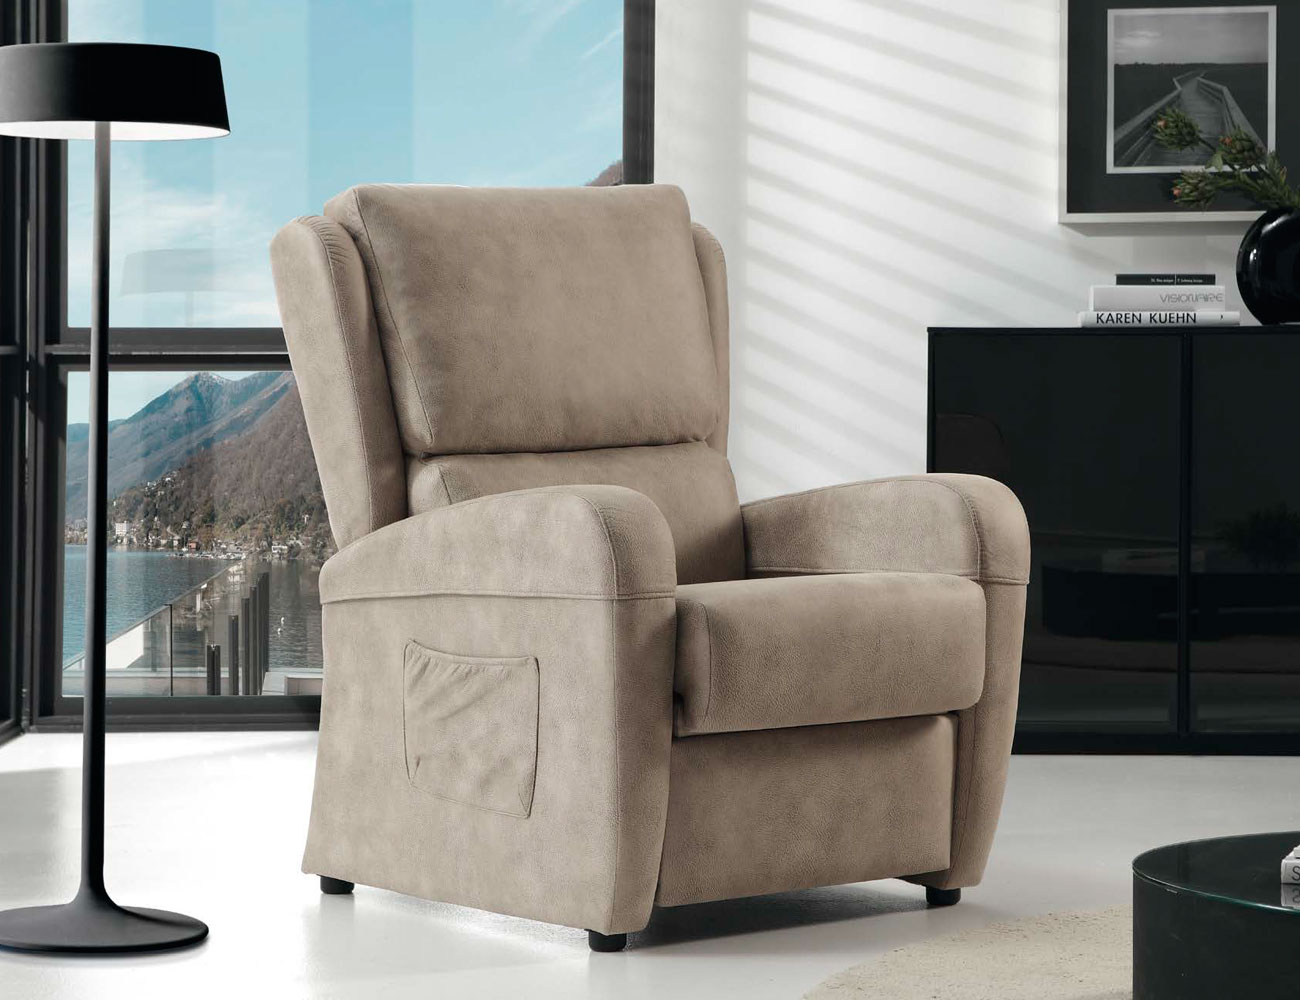 Sillon relax manual jana1